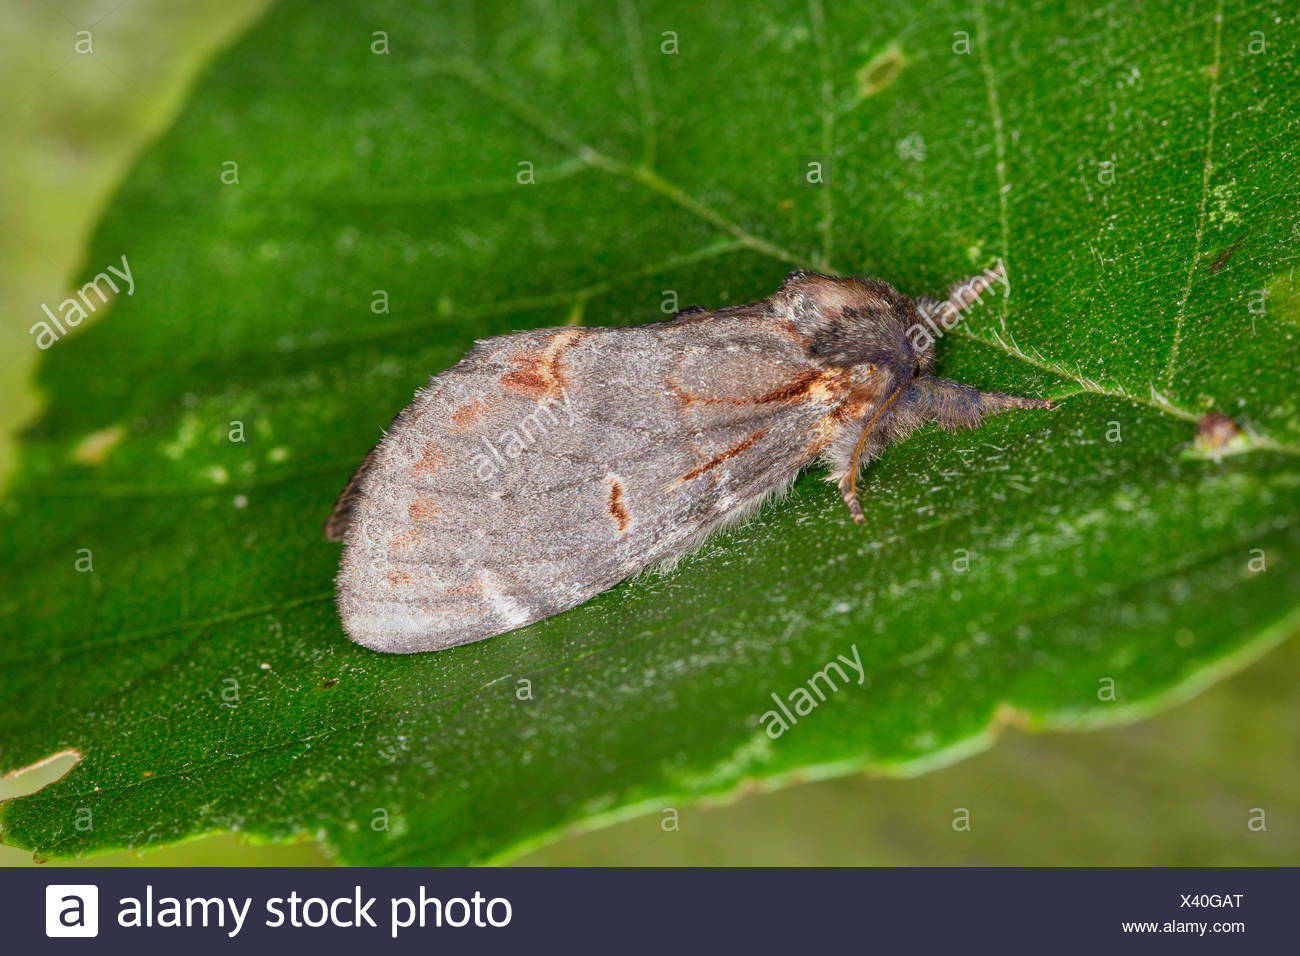 iron prominent (Notodonta dromedarius), on a leaf, Germany - Stock Image